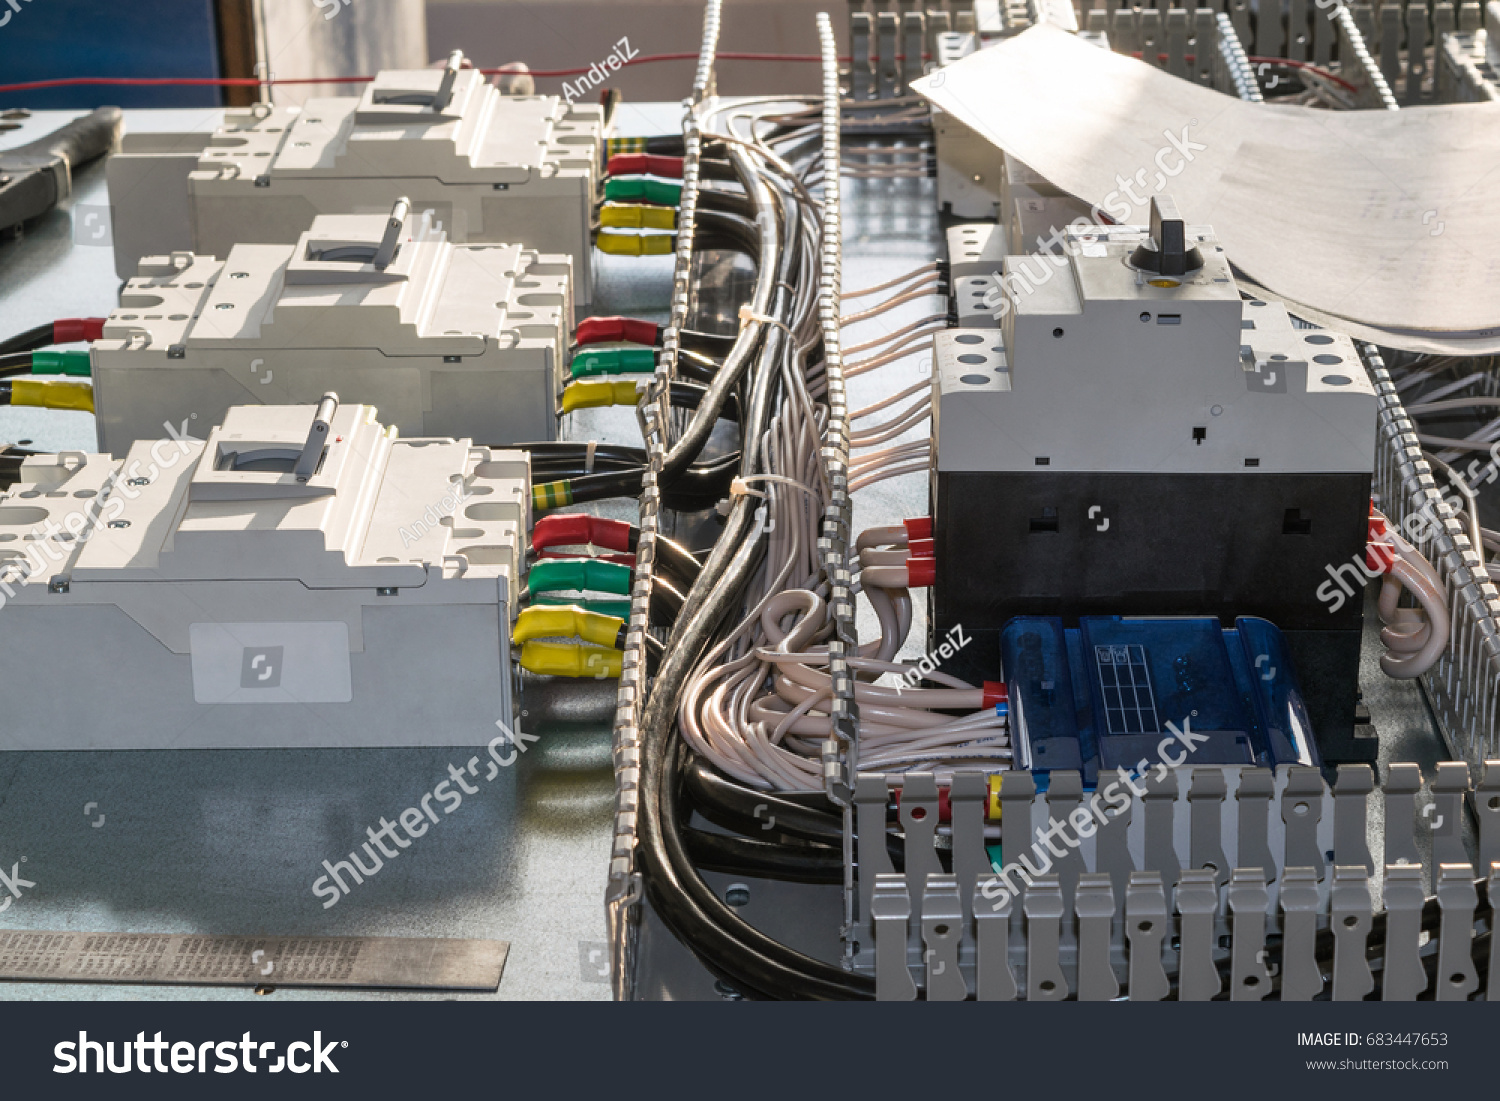 On Mounting Panel There Circuitbreakers Circuit Stock Photo Edit Wiring Motor Breaker The Are Breakers And Protection Of